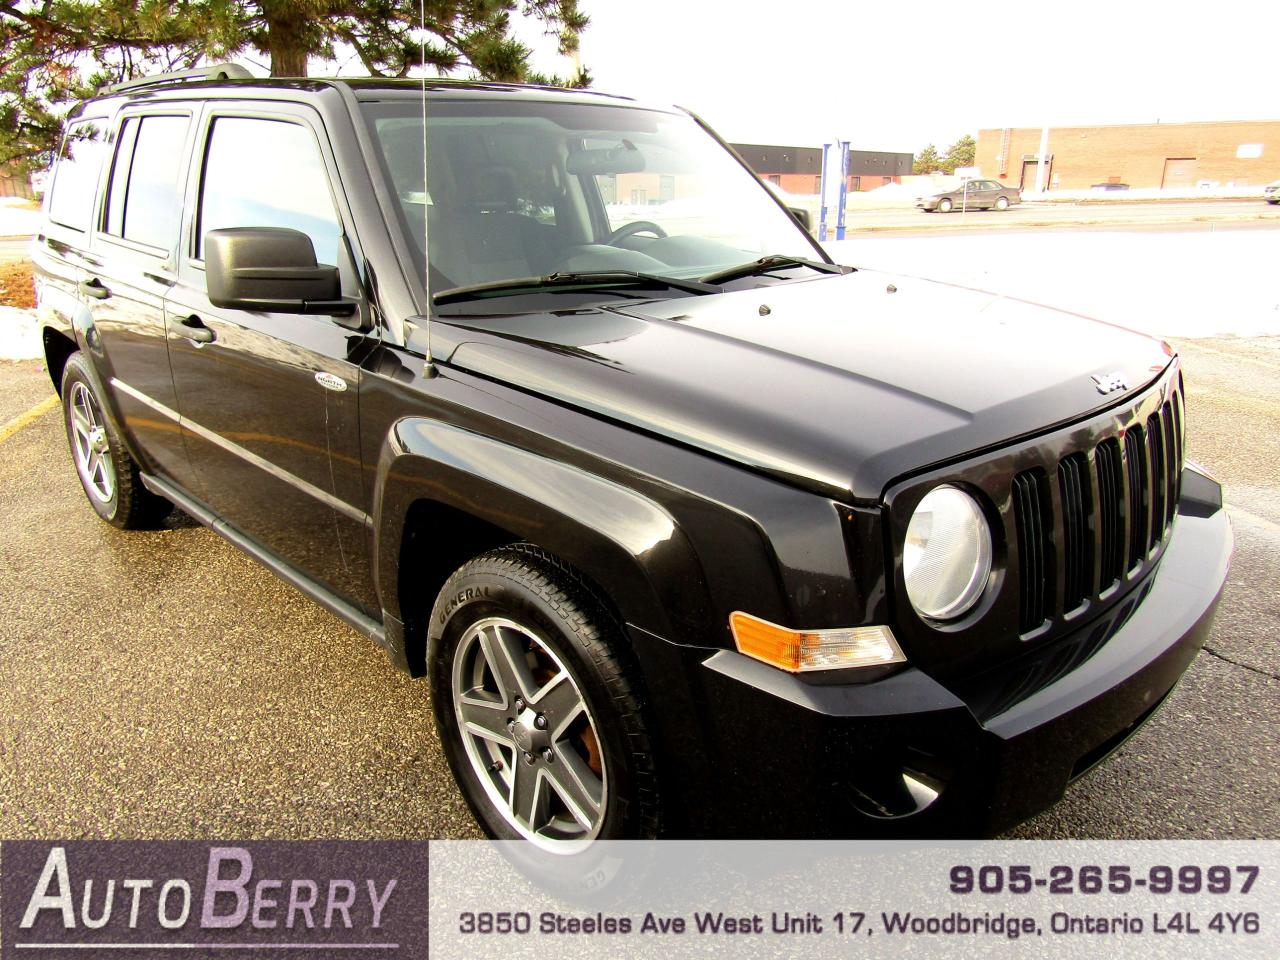 utility automobiles sport photo lethbridge patriot in brilliant used side left l crystal ab view image jeep door details black pearl